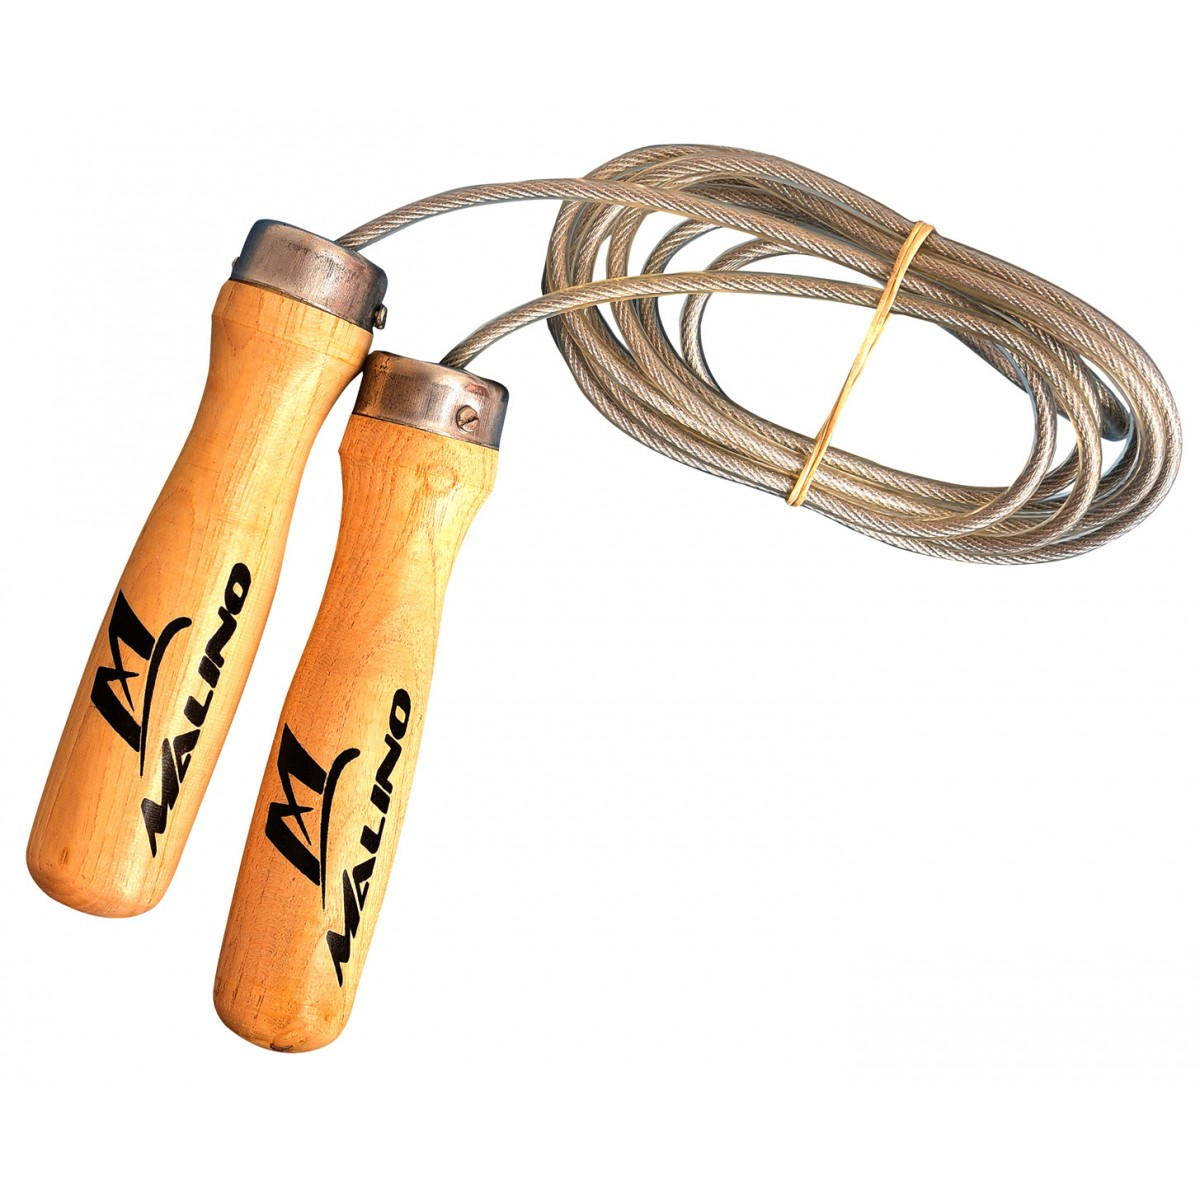 Malino Metal Skipping Ropes